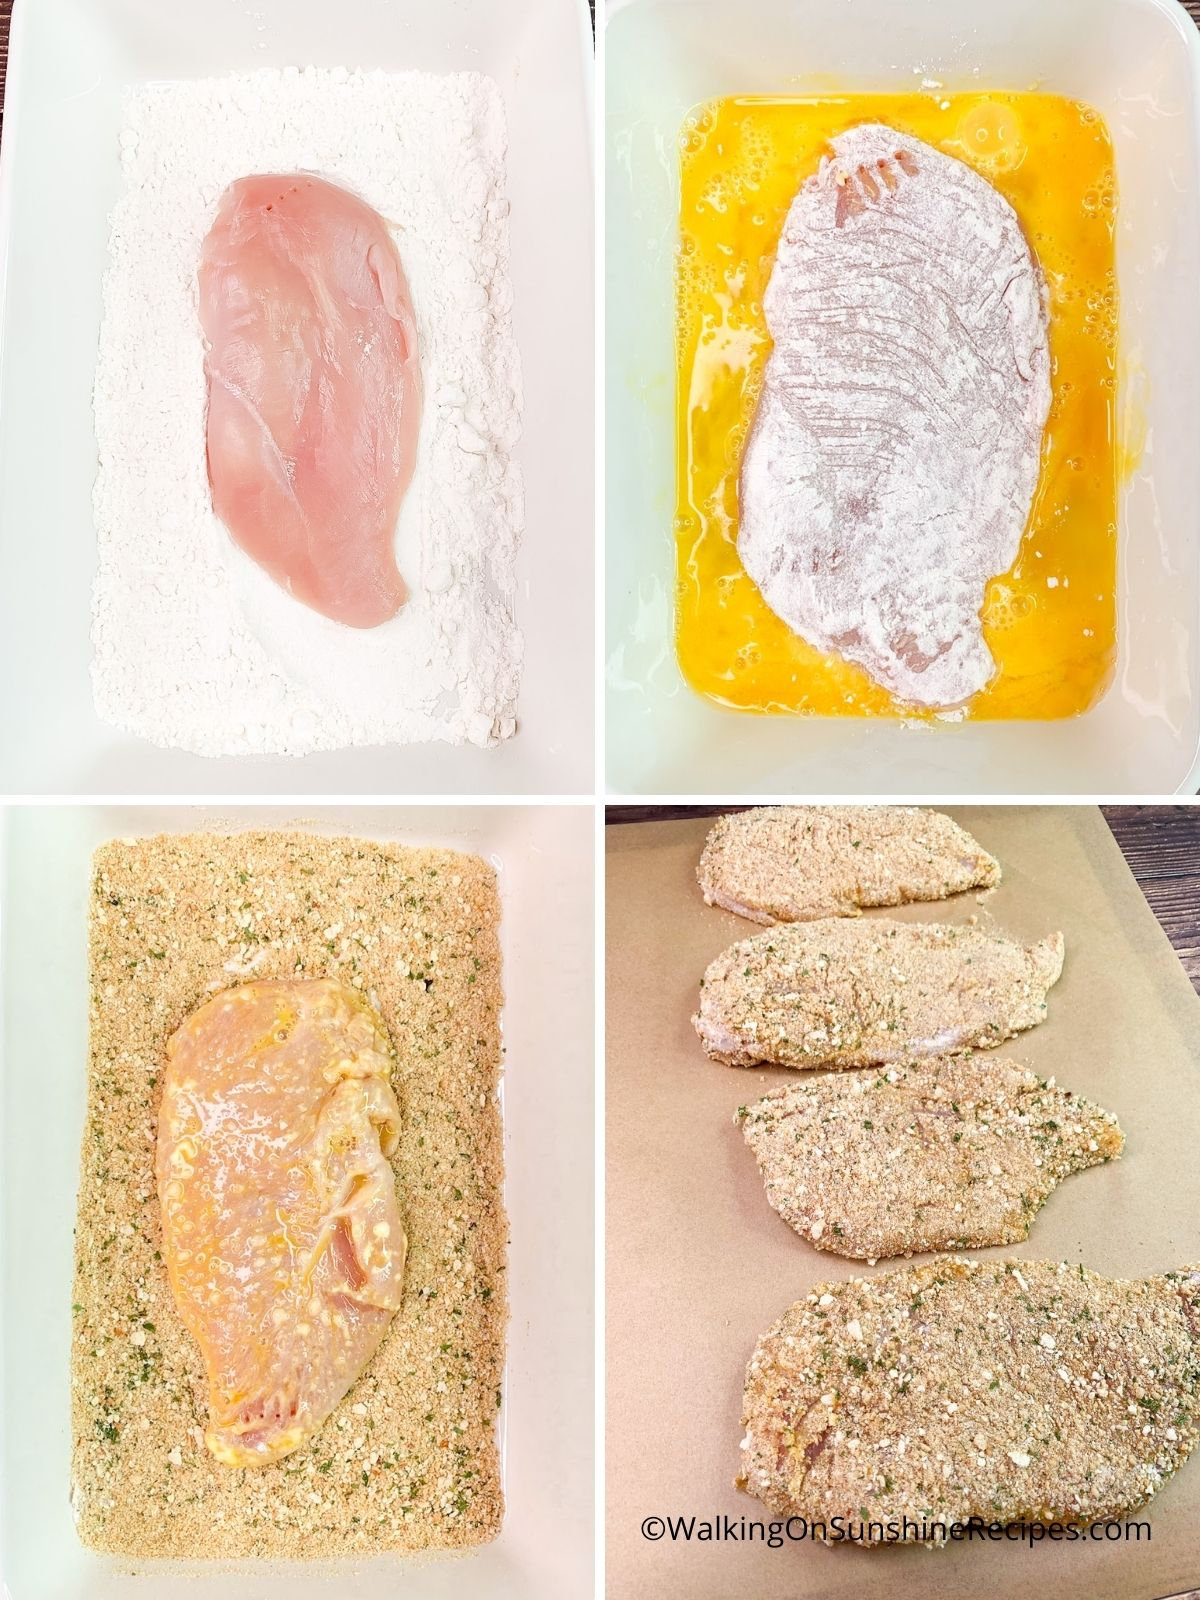 Prepping chicken cutlets in flour, egg and breadcrumbs.